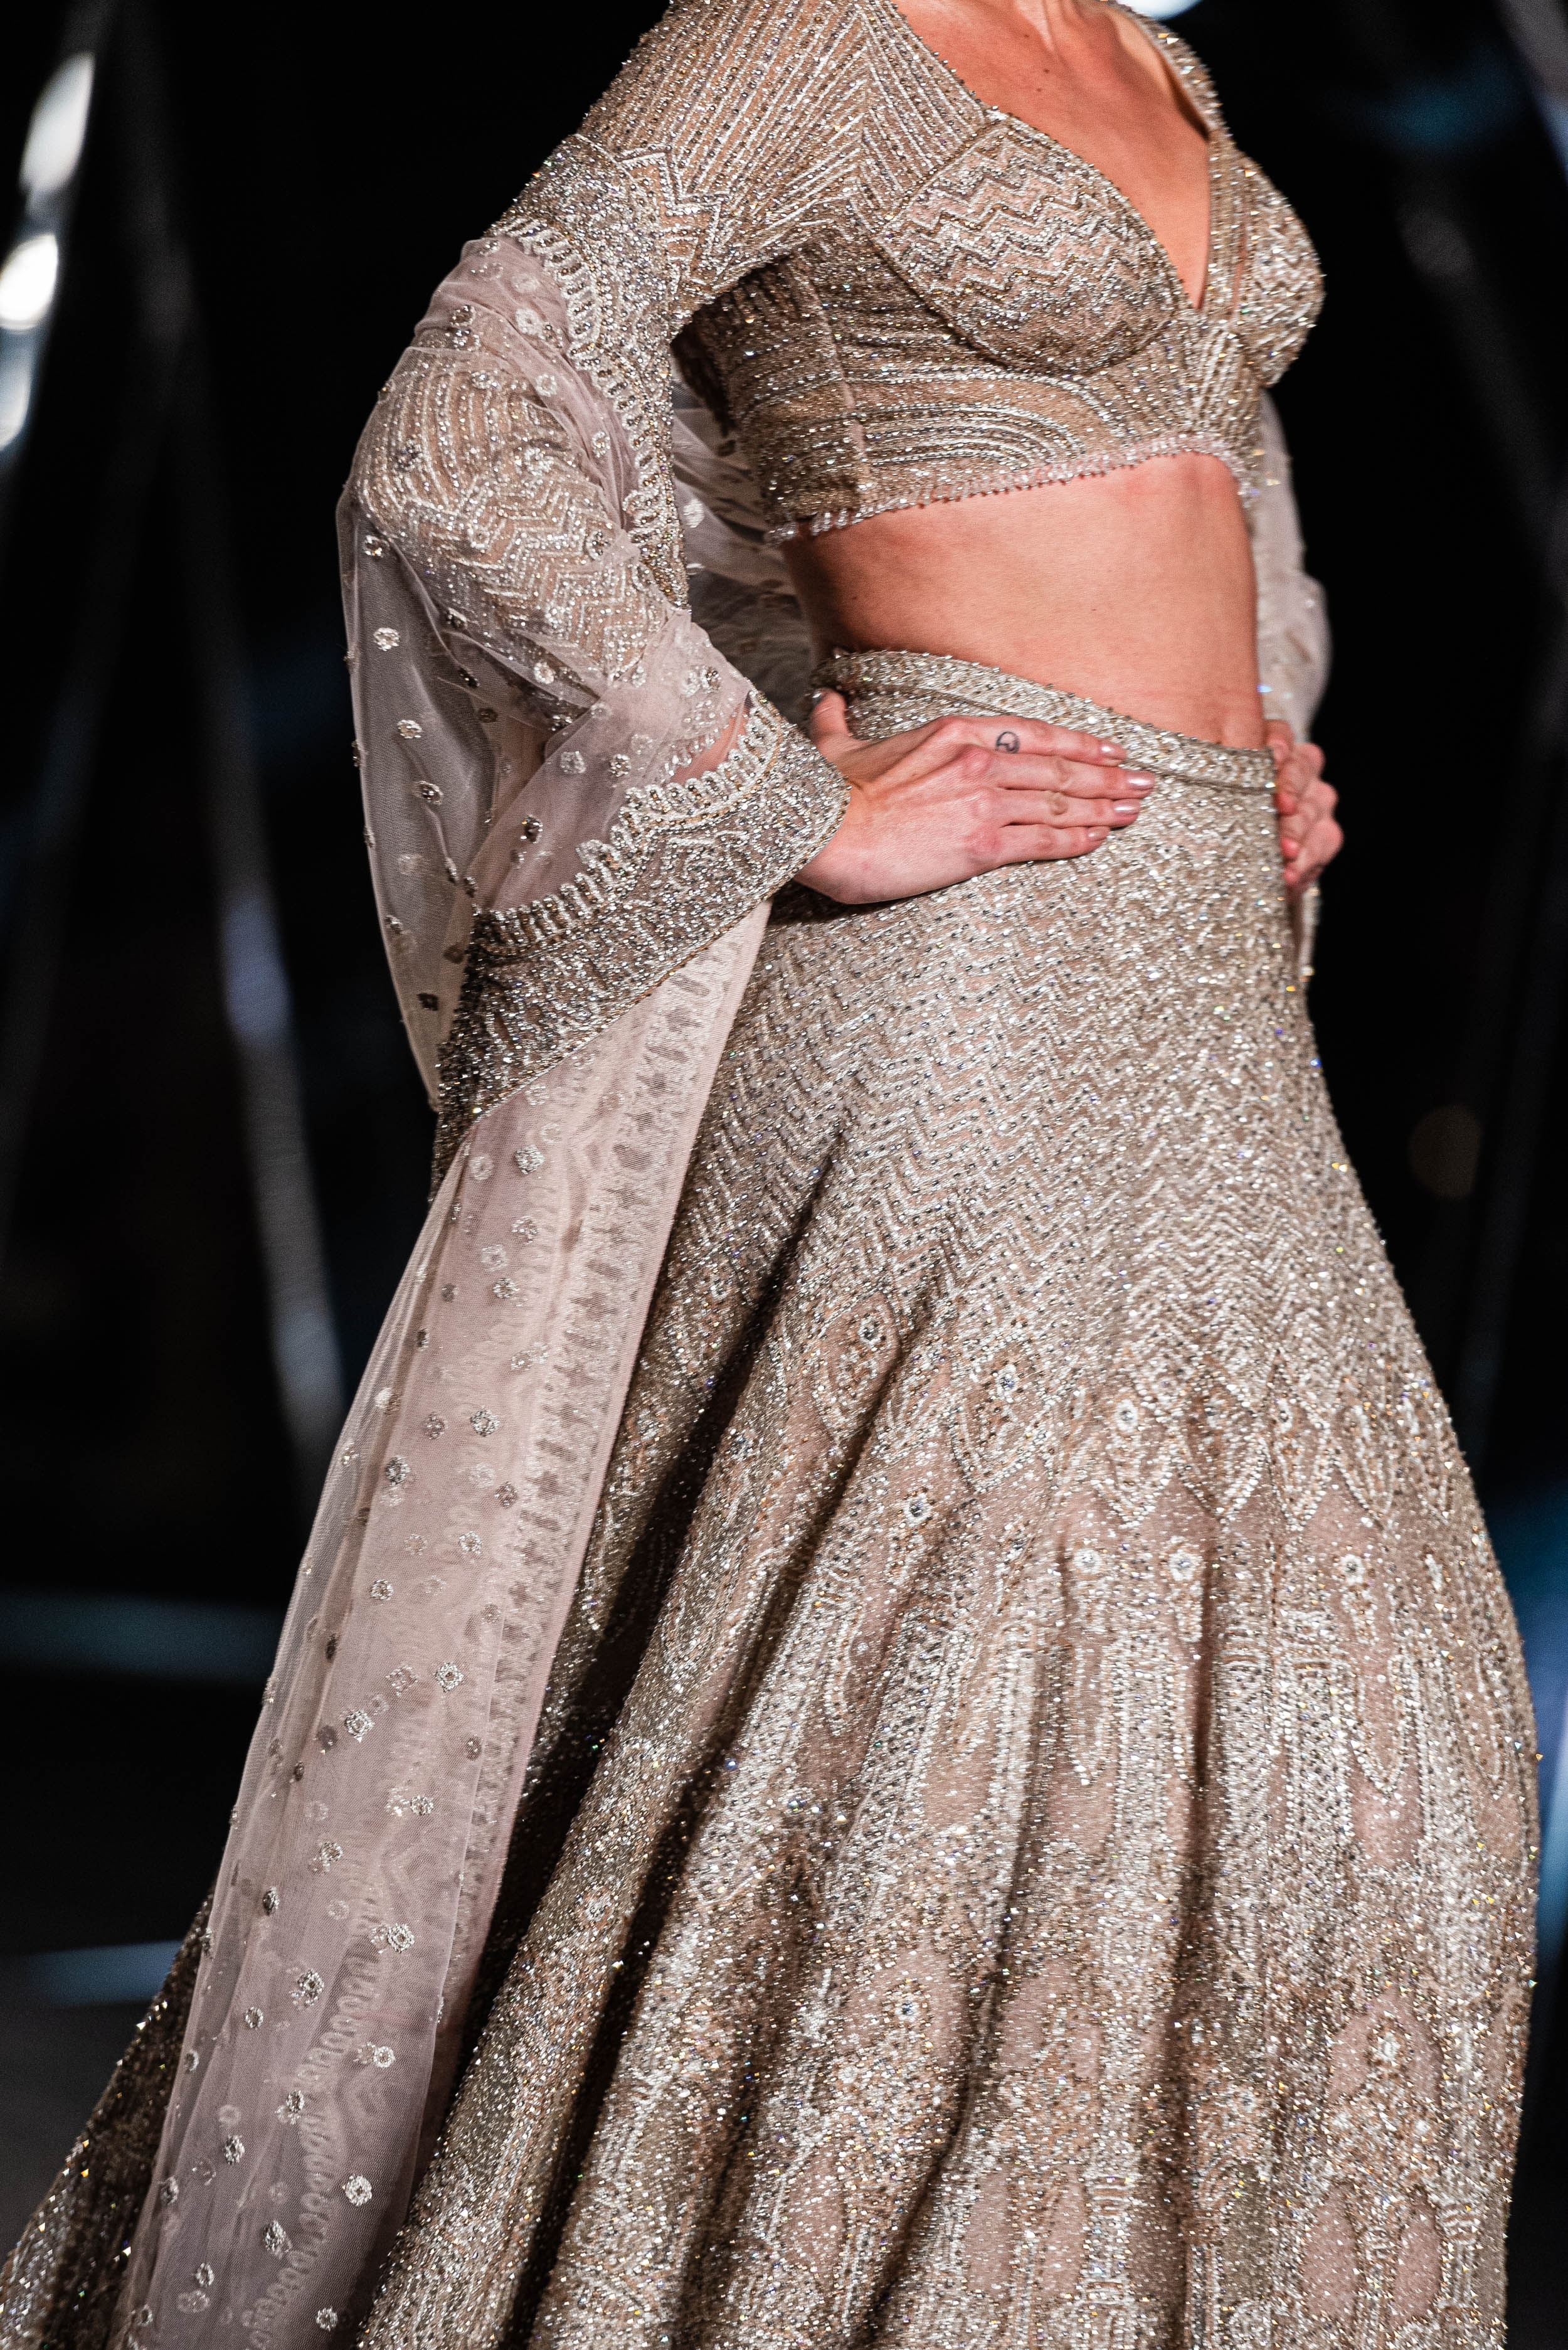 Naina Redhu, Naina.co, India Couture Week 2019, ICW2019, The Voice of Fashion, TVoF, Couture Close Up, Close Up Couture, Couture Week, Fashion Week, The FDCI, Fashion Design Council of India, Falguni Peacock, Shane Peacock, Falguni Shane Peacock, Indian Couture, Made In India, Taj Palace New Delhi, New Delhi, EyesForFashion, Lifestyle Photographer, Runway Photographer, Fashion Photographer, Fashion Week Photographer, Luxury Photographer, Fashion Blogger, Photo Blogger, Luxury Blogger, Lifestyle Blogger